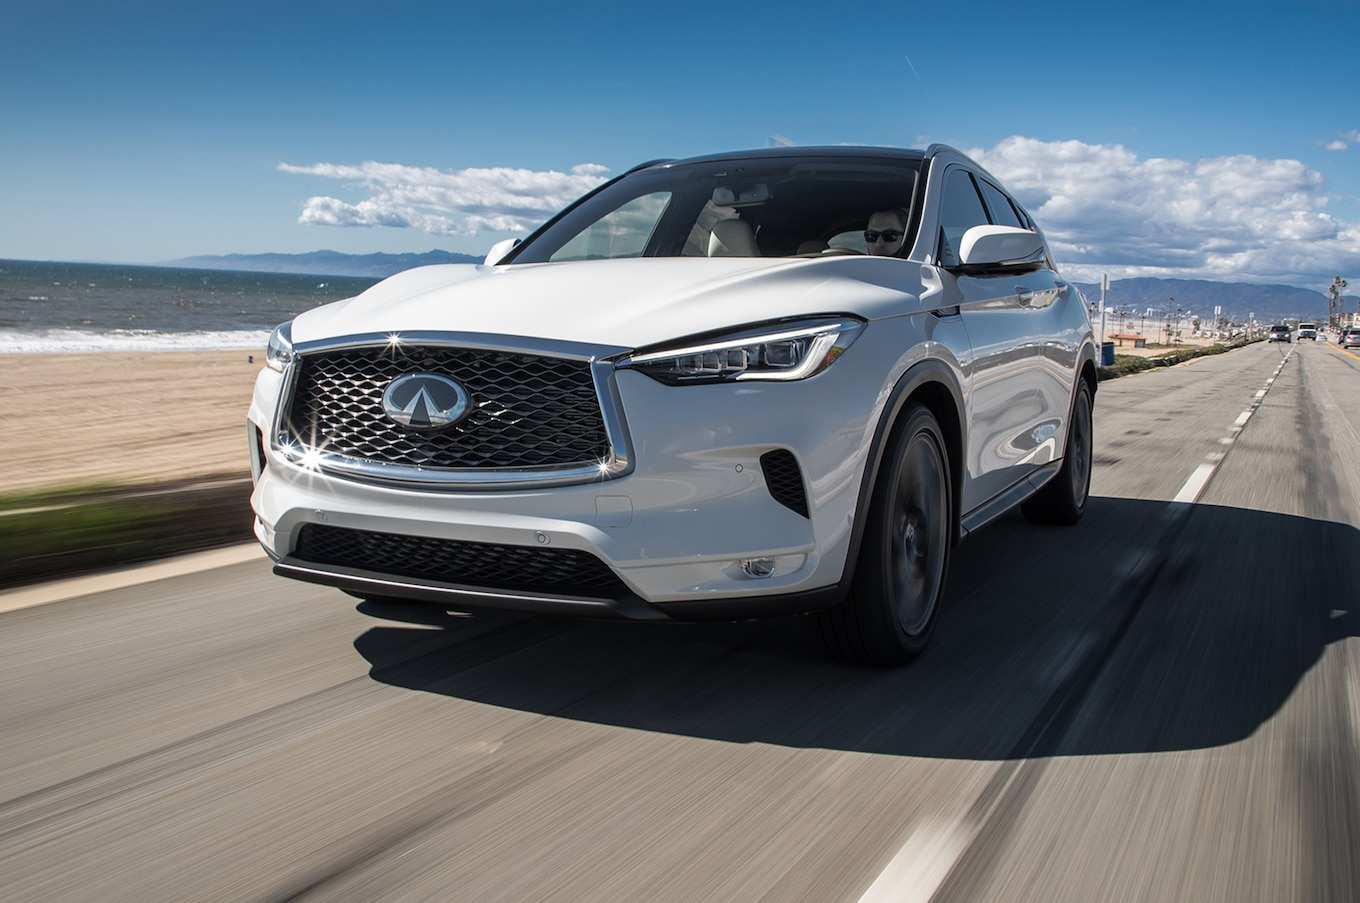 63 New 2019 Infiniti Qx50 Horsepower Redesign with 2019 Infiniti Qx50 Horsepower